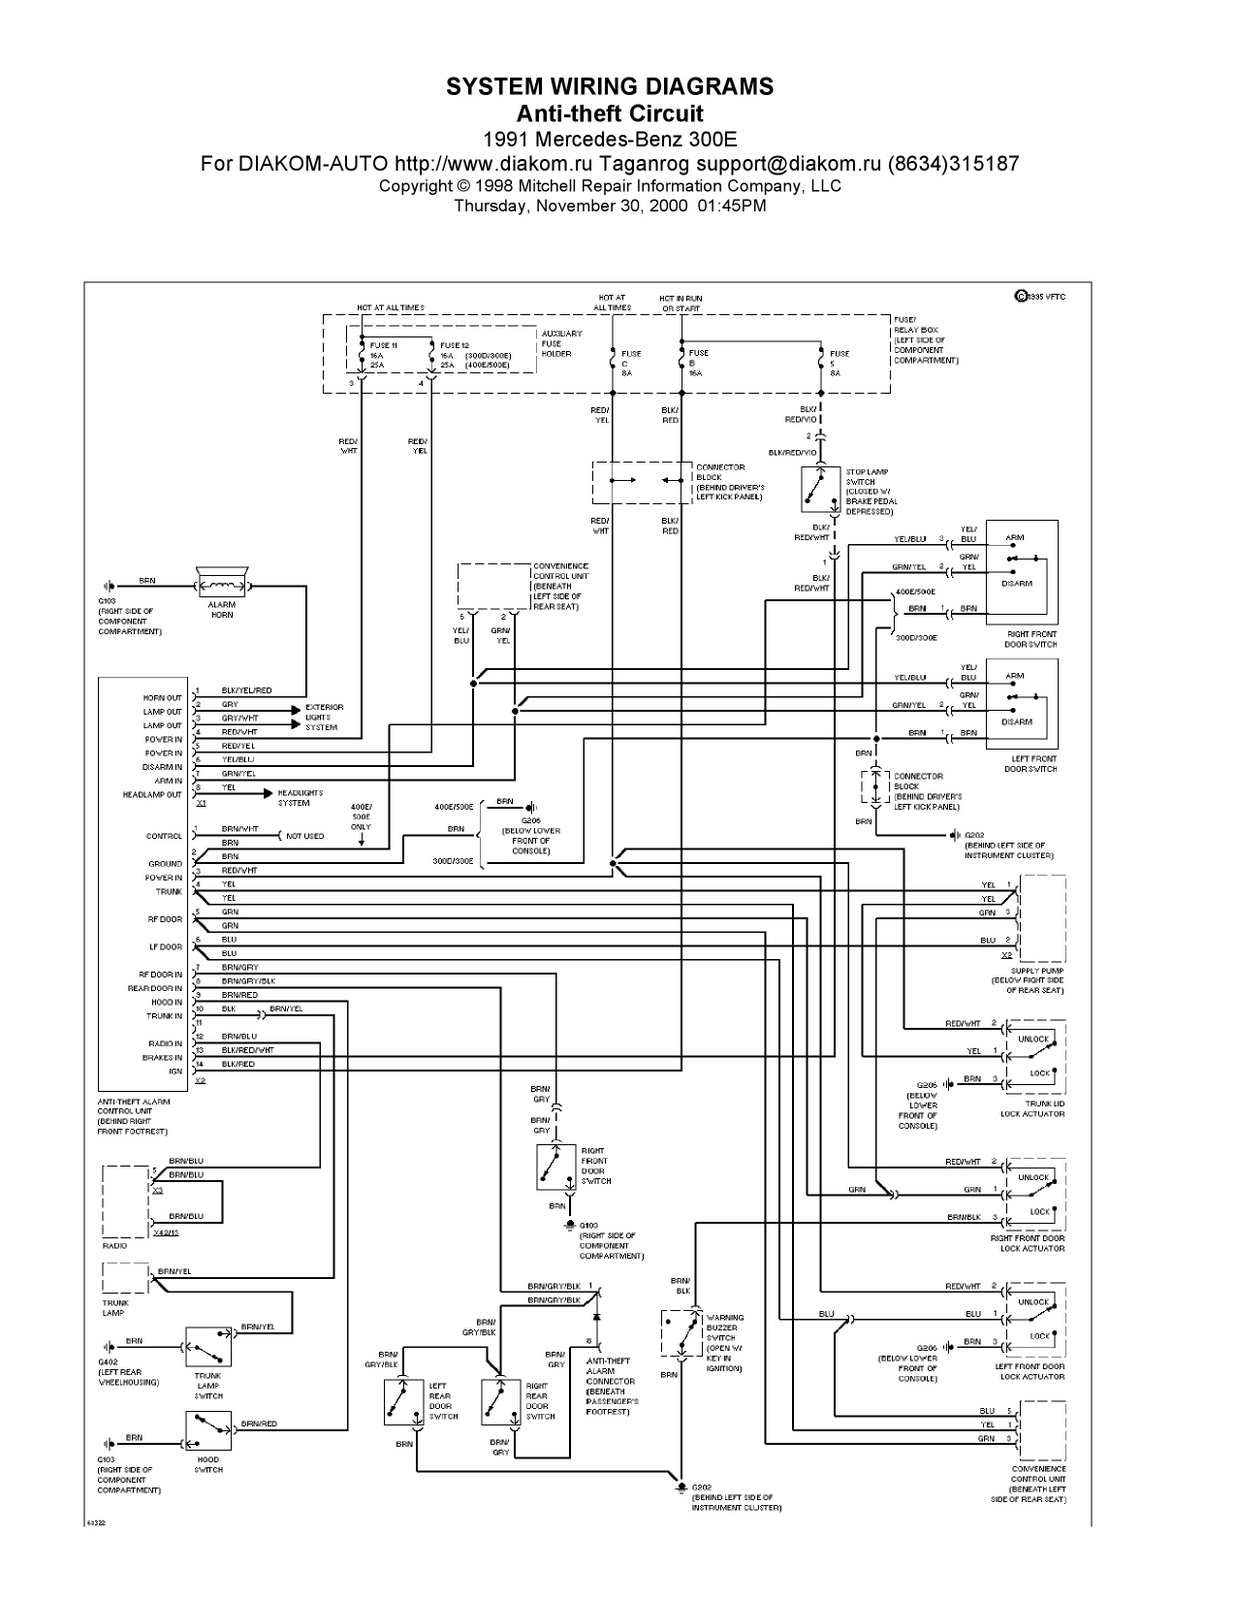 Car Speed Power Mercedes Benz 300e System Wiring Diagrams Anti Theft Circuit